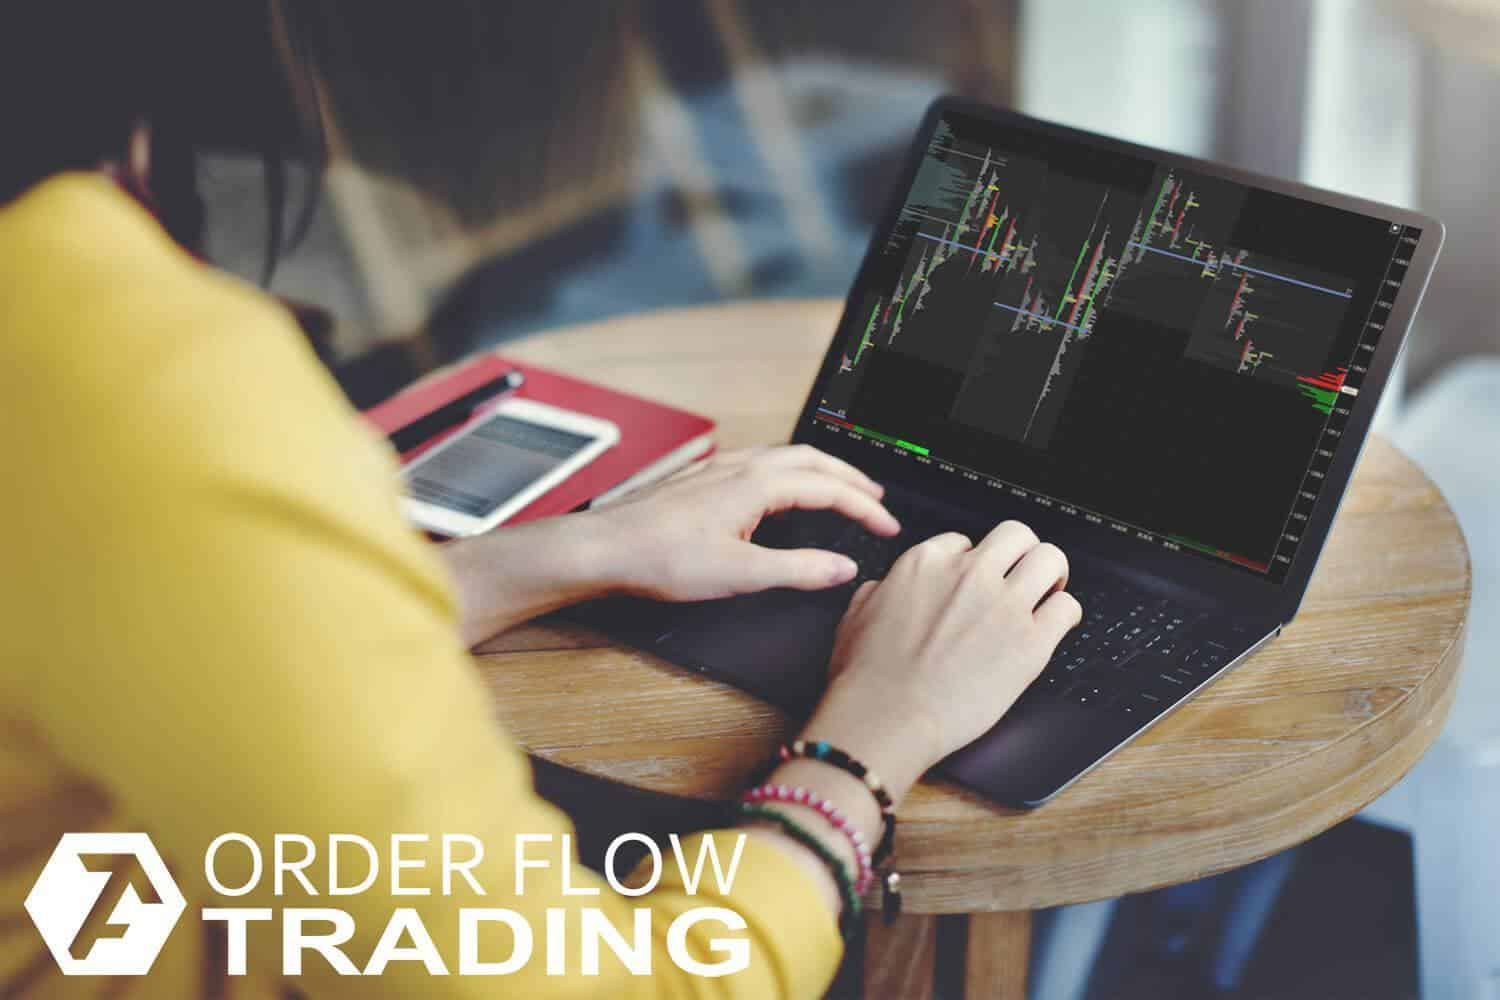 Market profiles: 3 things that can improve your trading